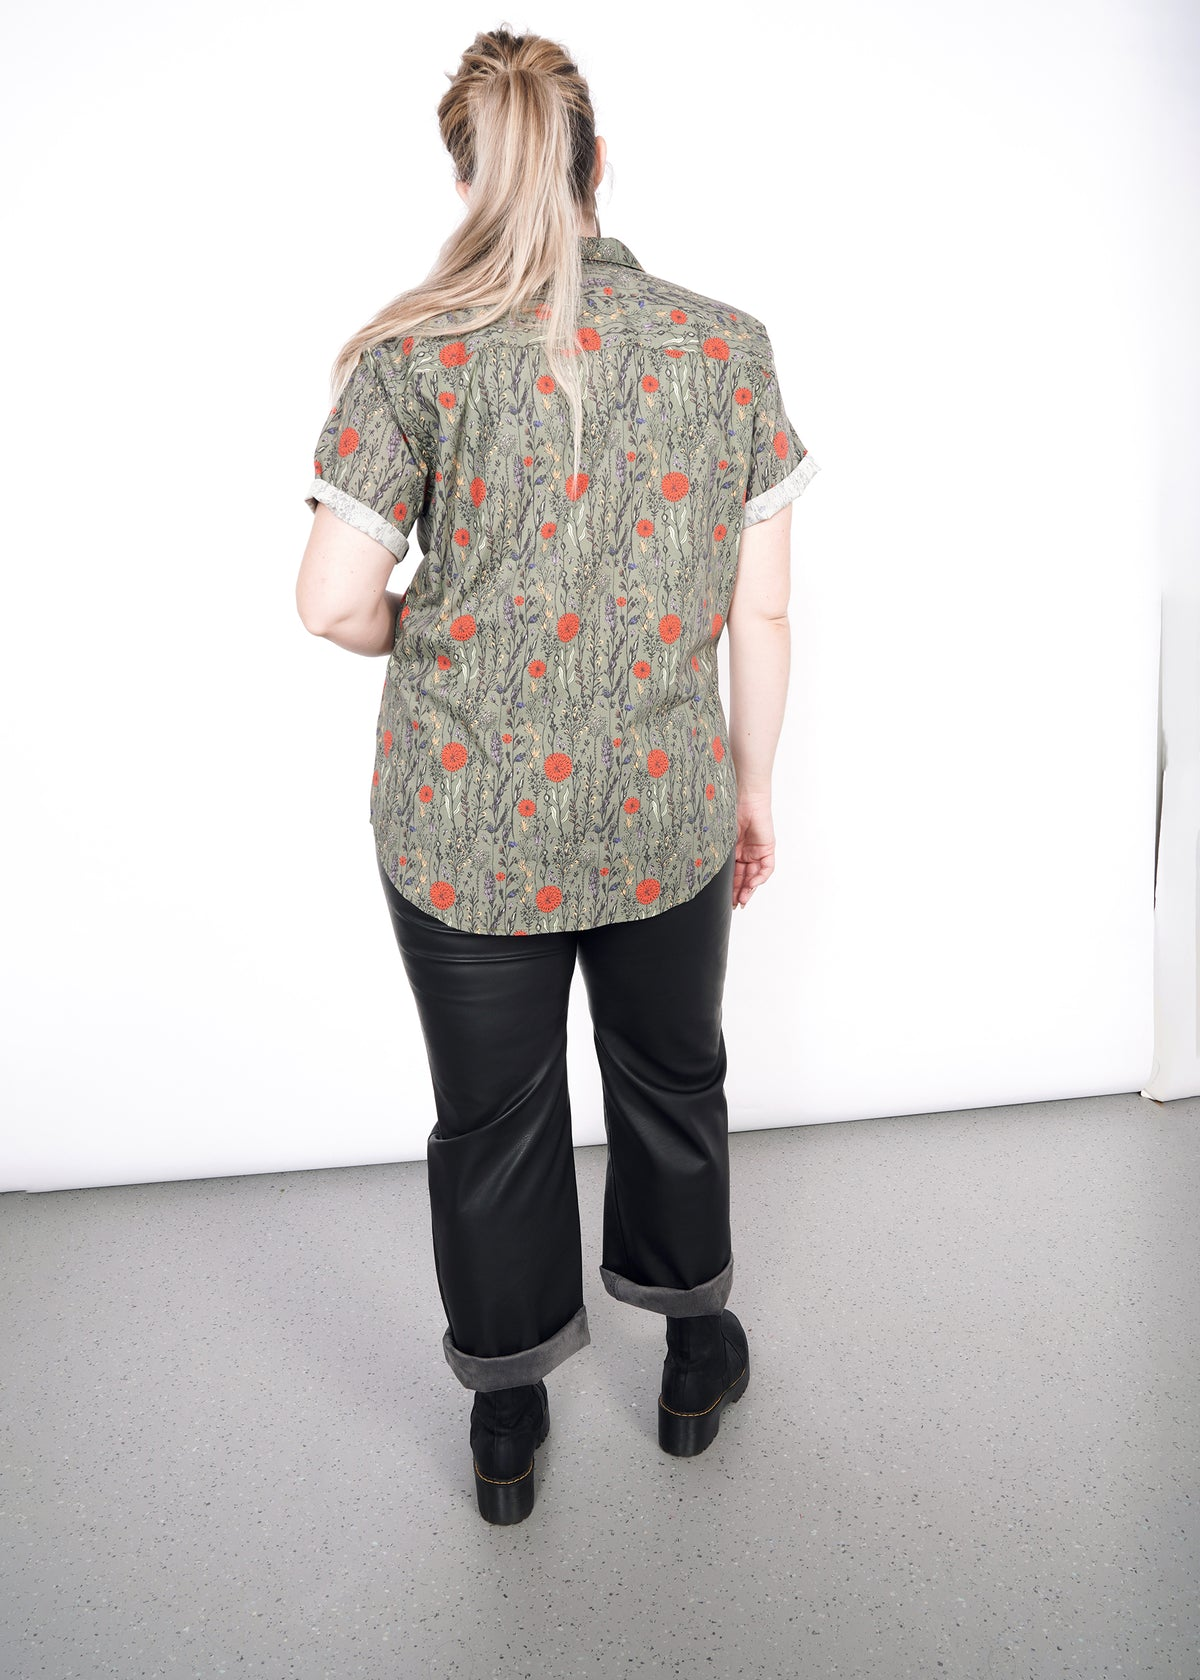 Back view of model wearing botanical all over printed short sleeved button up shirt in size XL, with the sleeves cuffed, styled with black pants and boots